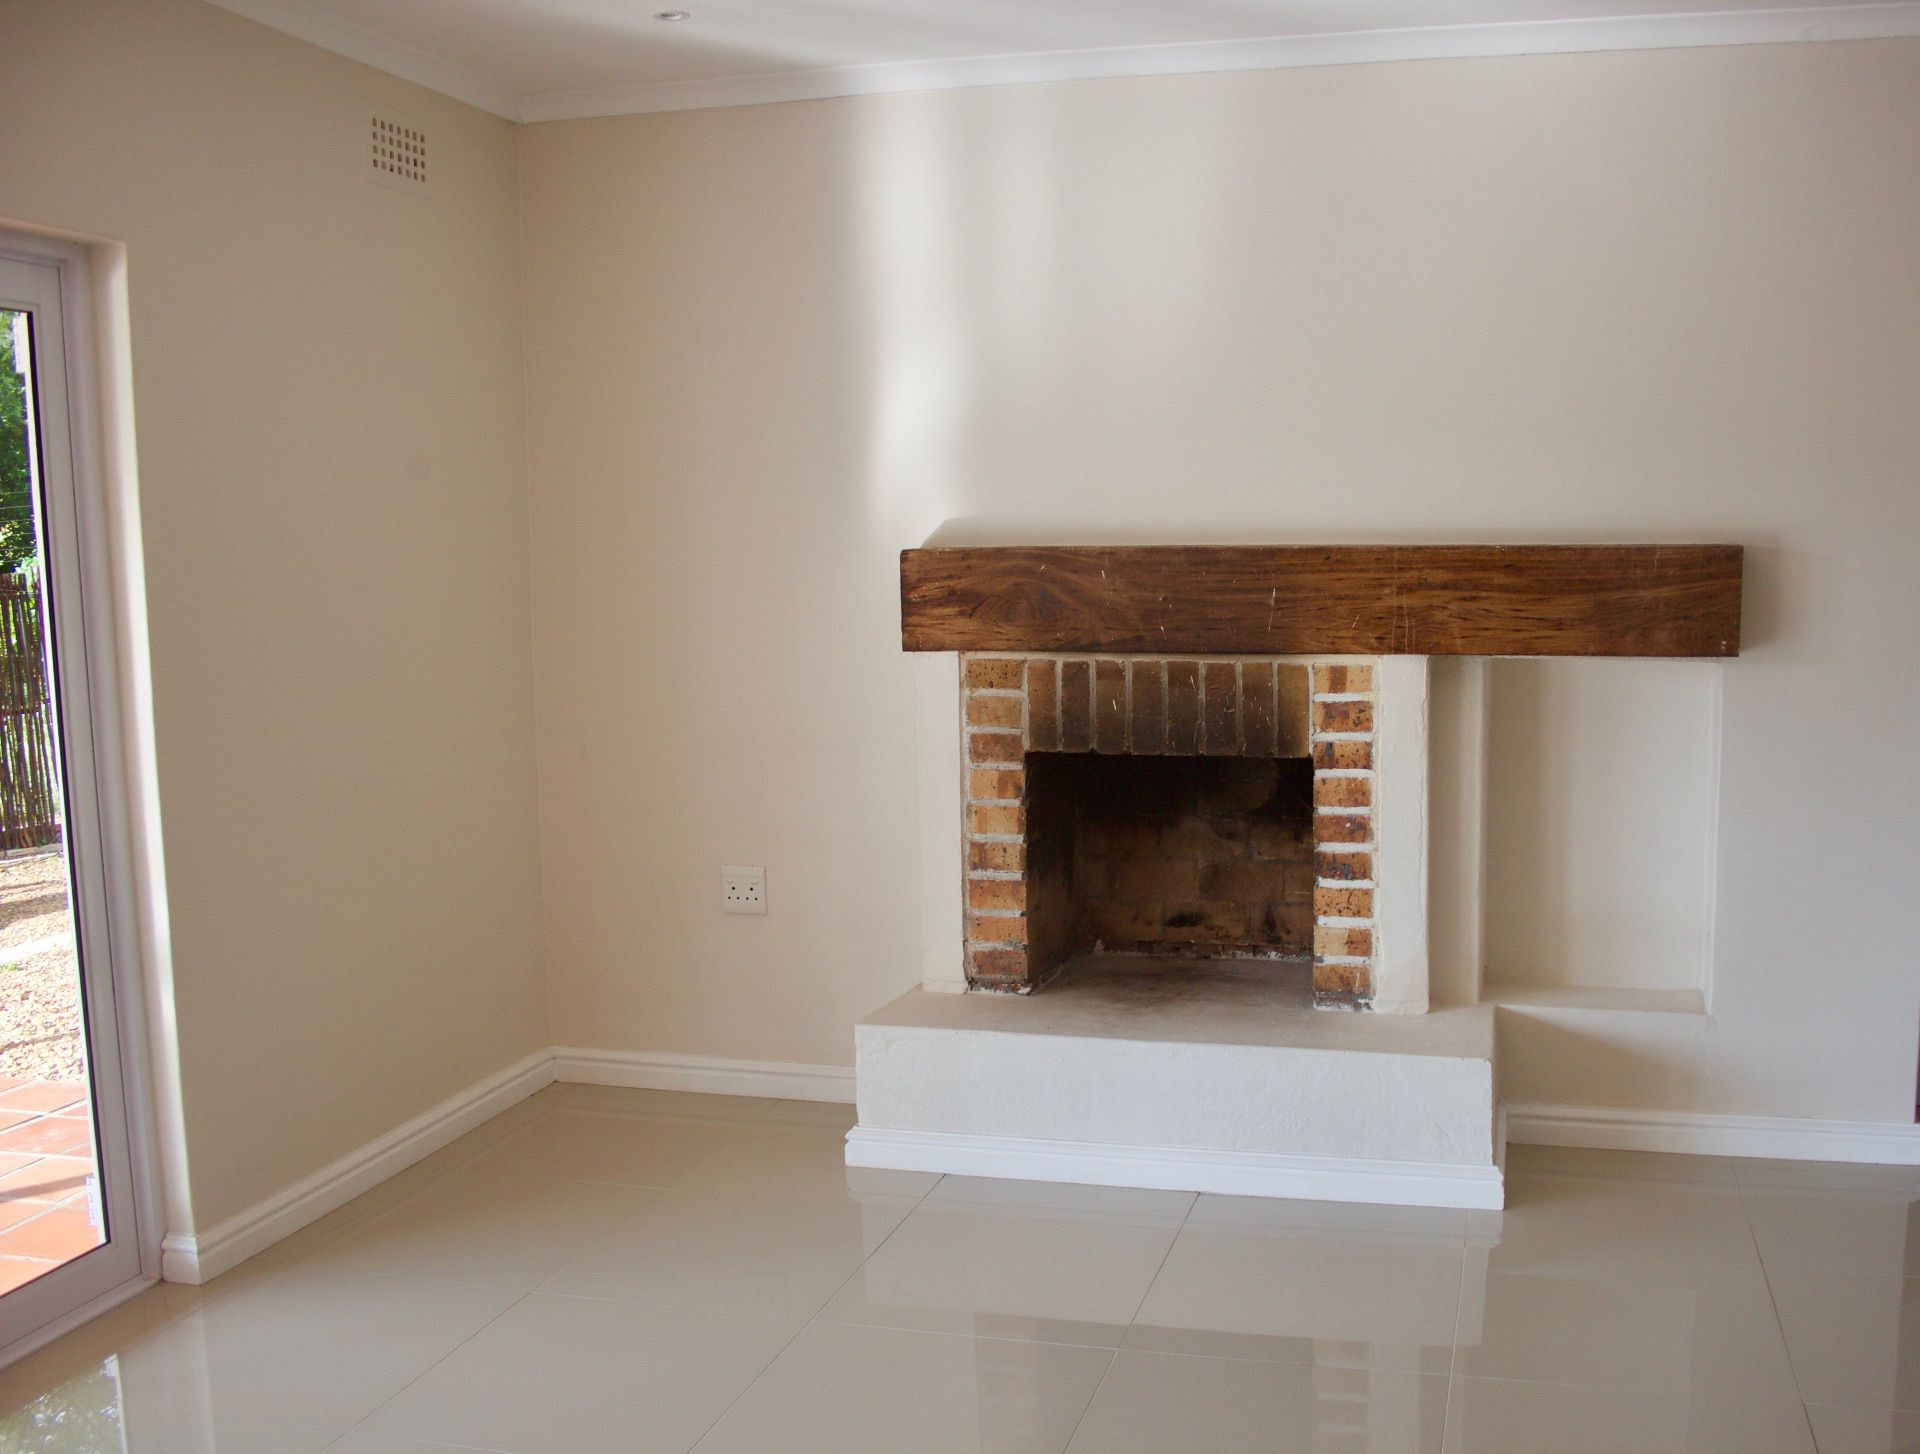 House in Hout Bay - fireplace